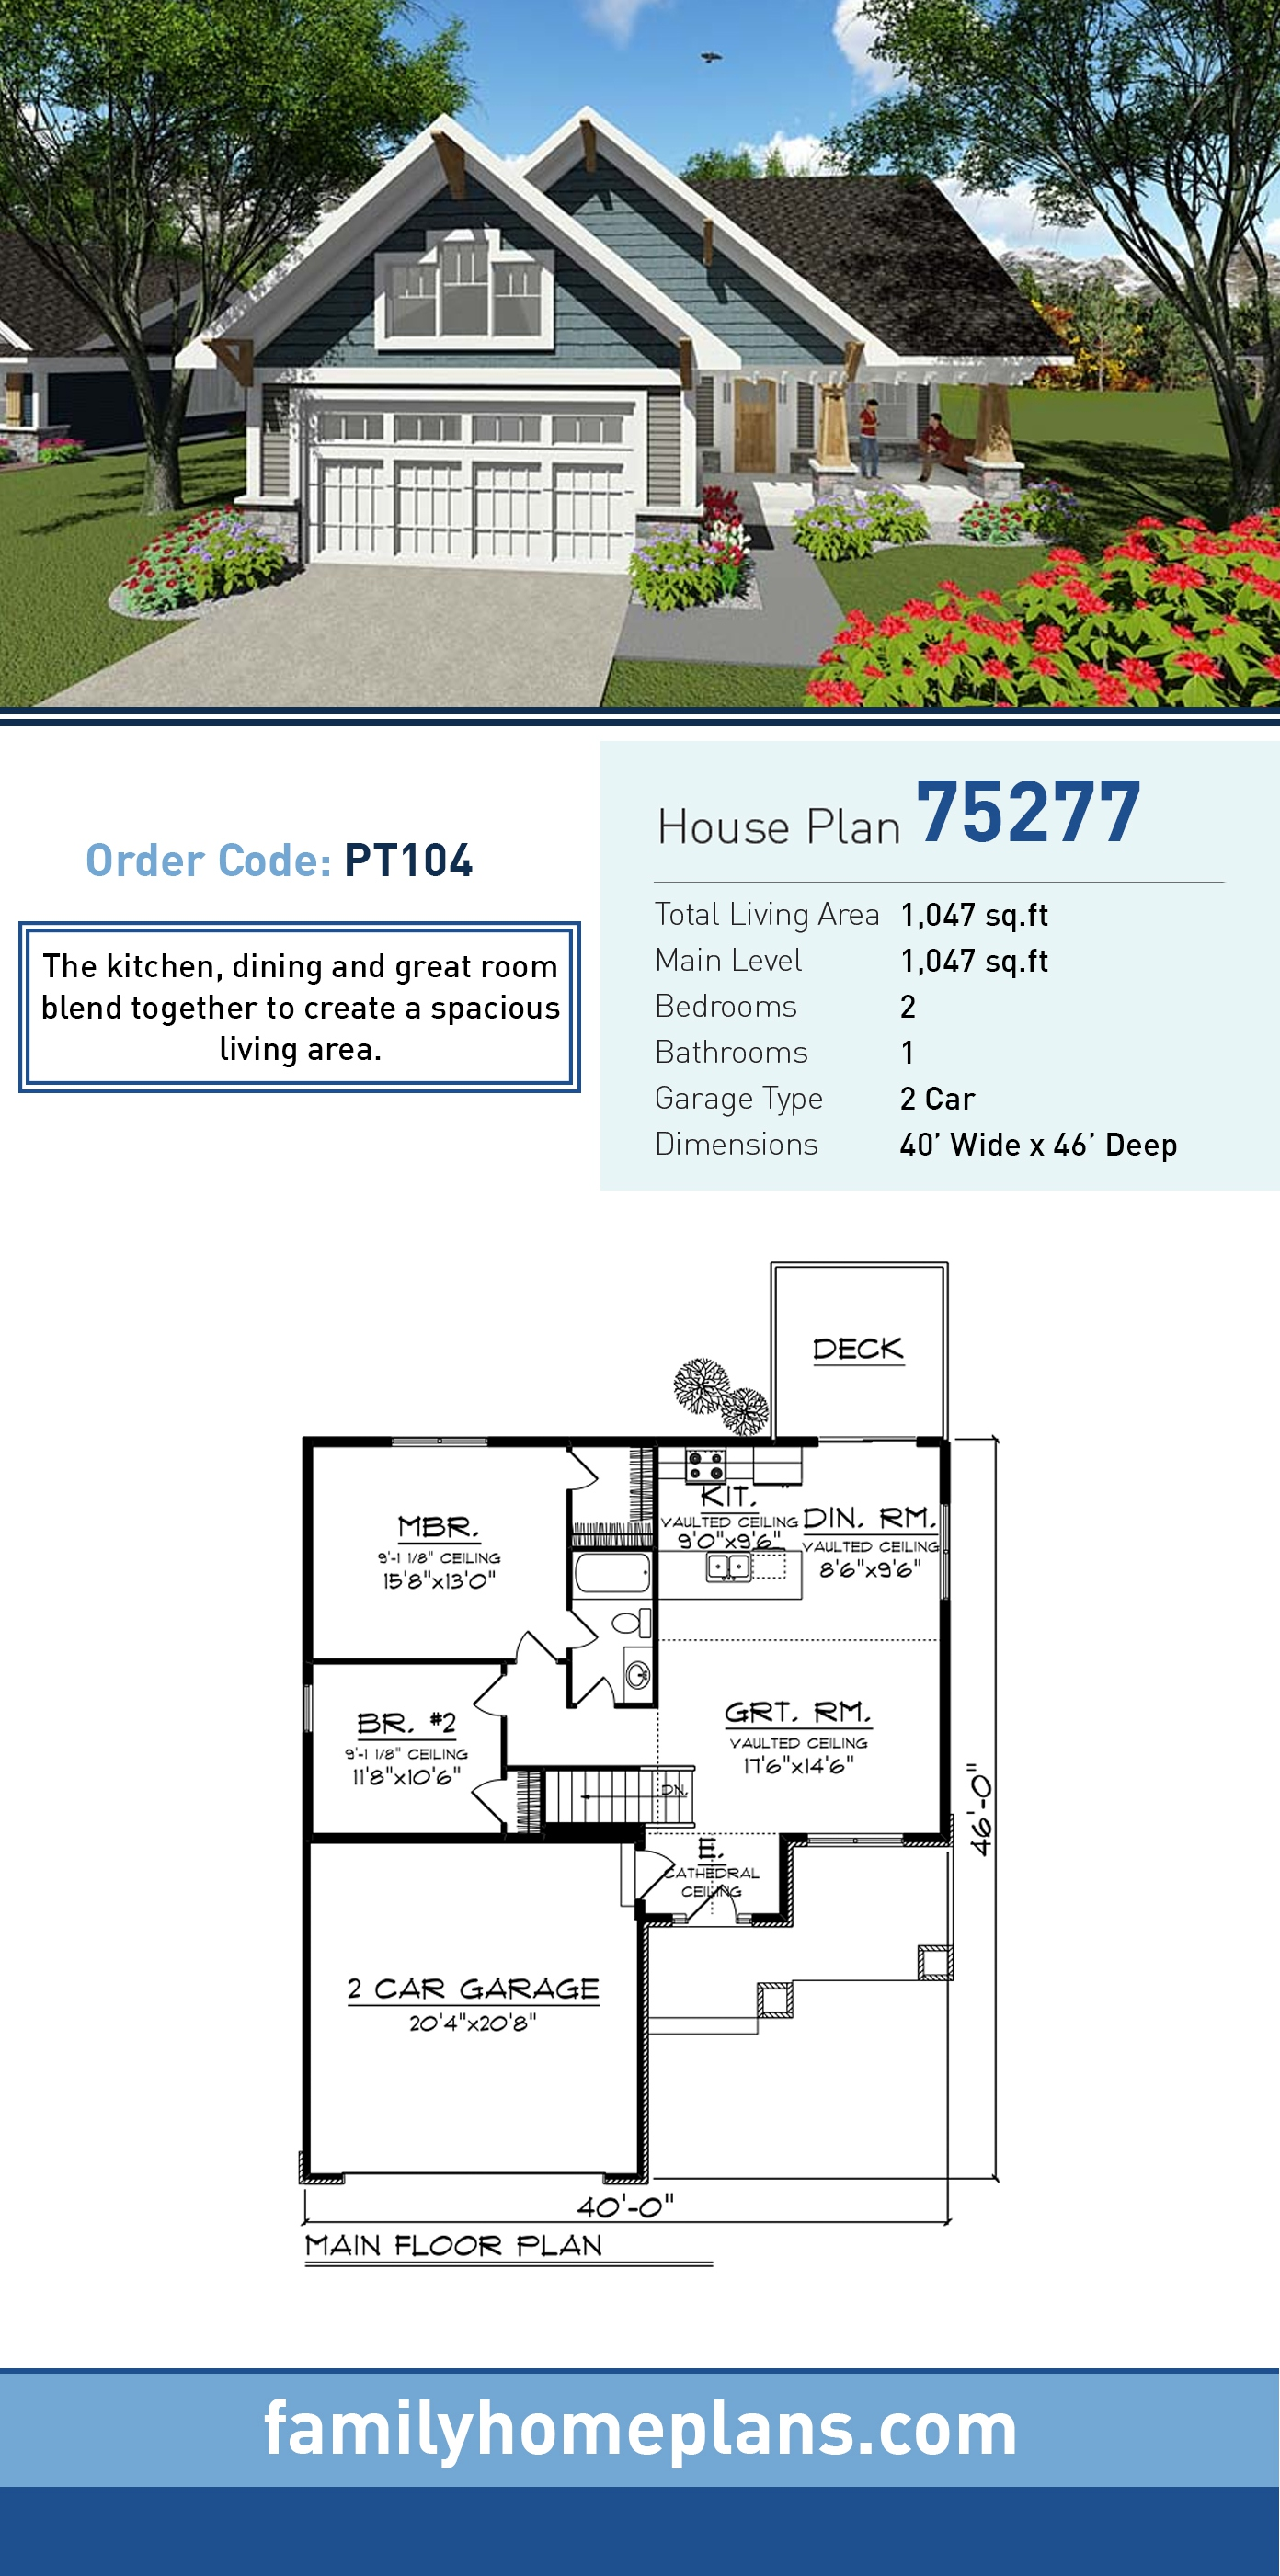 House Plan 75277 Traditional Style With 1047 Sq Ft 2 Bed 1 Bath